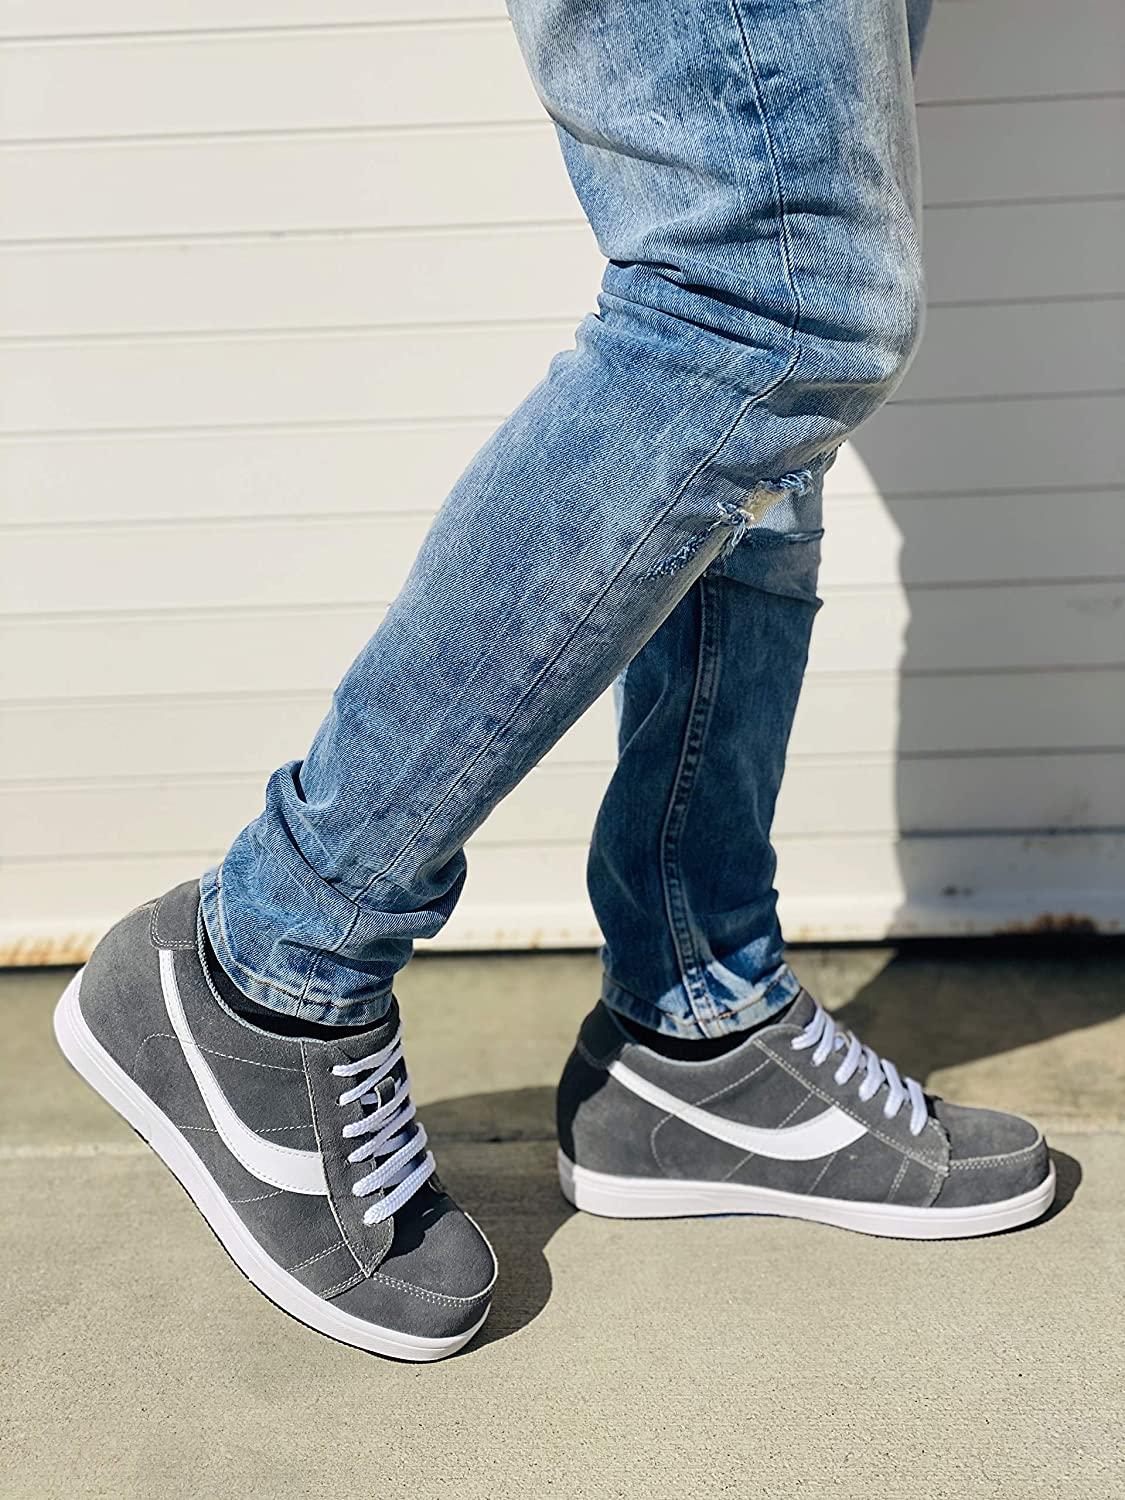 2.8 Inches Taller Toto Mens Invisible Height Increasing Elevator Shoes Lace-up Suede Leather Sneakers